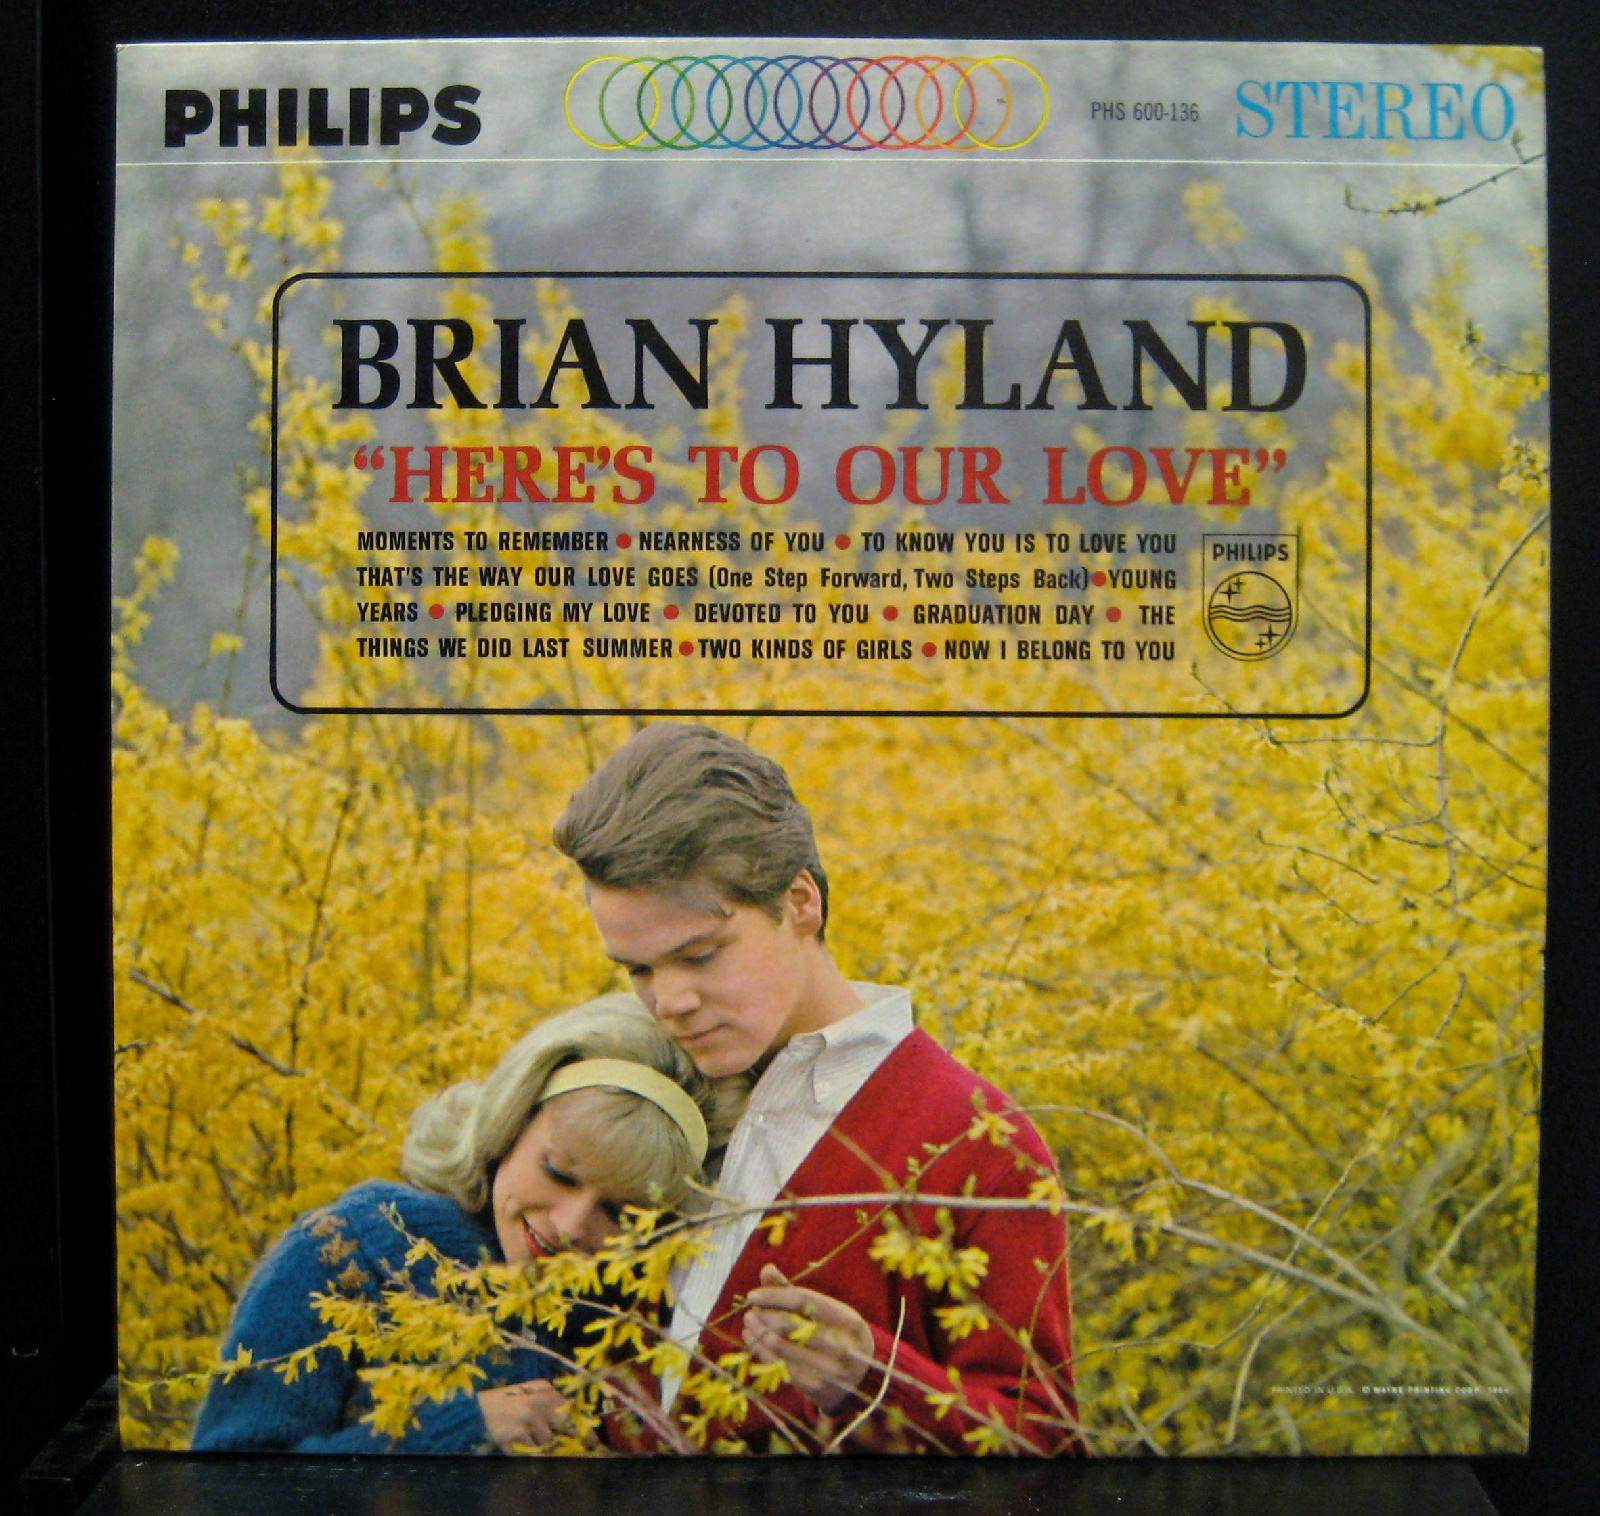 Brian Hyland - Brian Hyland Here's To Our Love Lp Vg+ 1964 Stereo Usa Phs 600-136 Promo Wlp (here's To Our Love)